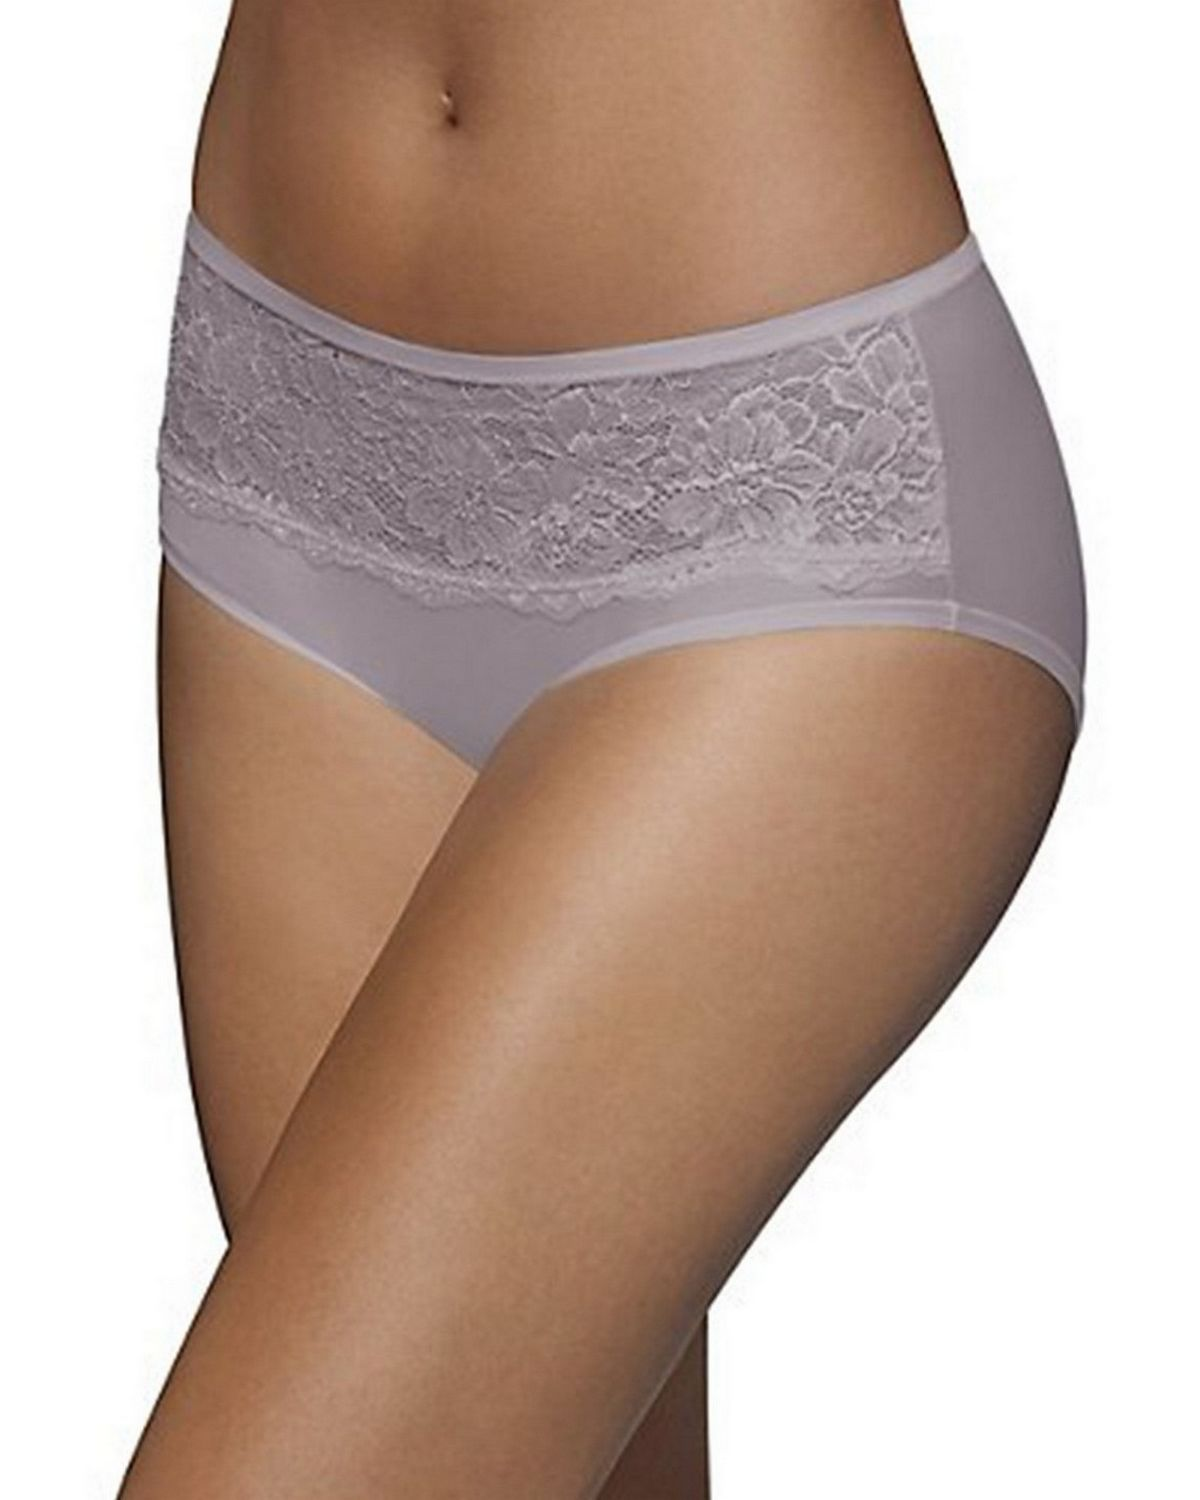 Bali 2783 One Smooth U Comfort Indulgence Satin with Lace Hipster - Warm Steel - 6 2783